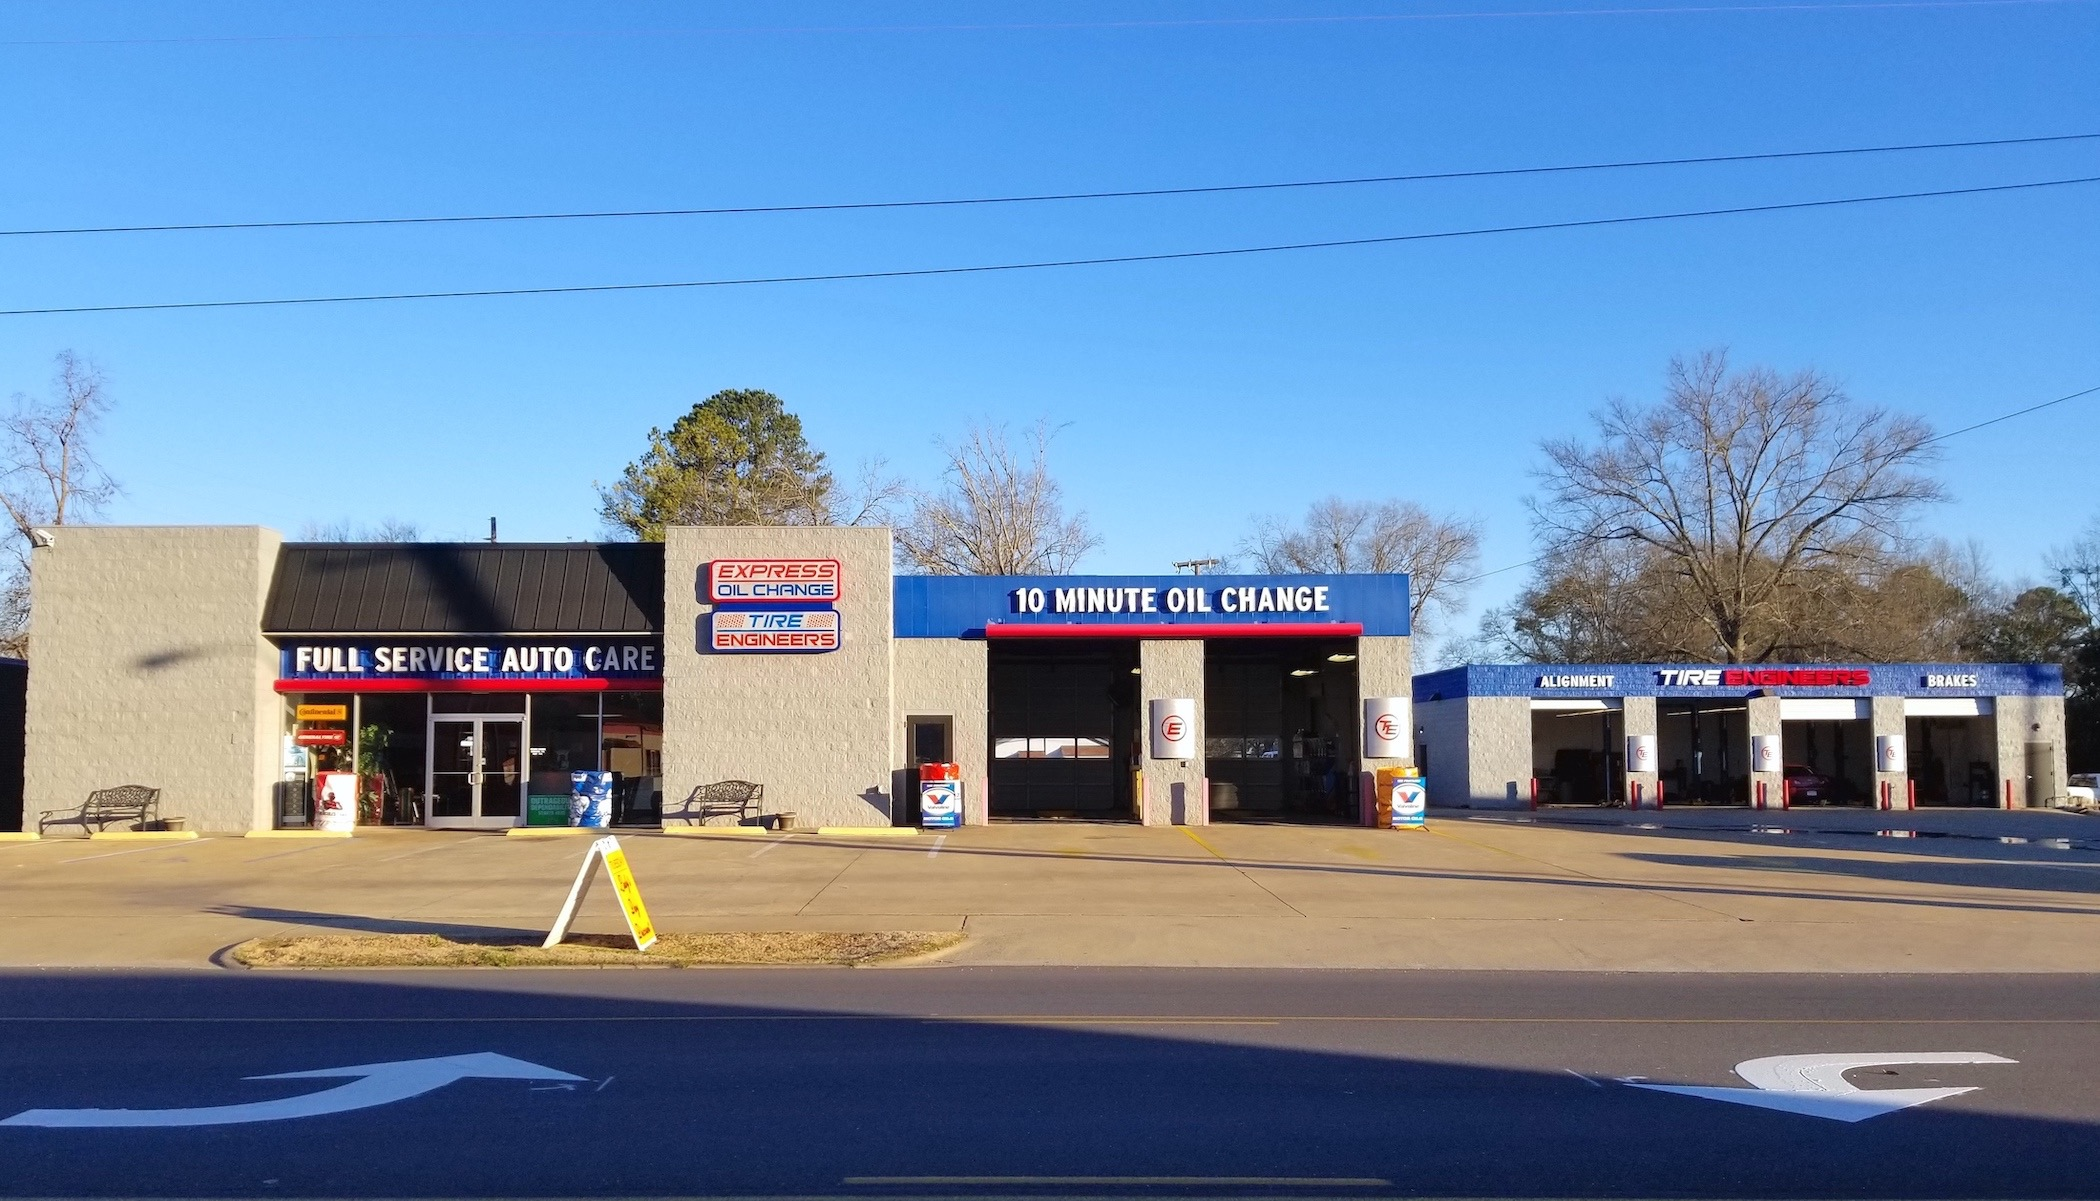 Express Oil Change & Tire Engineers Sylacauga, AL - Fort Williams store